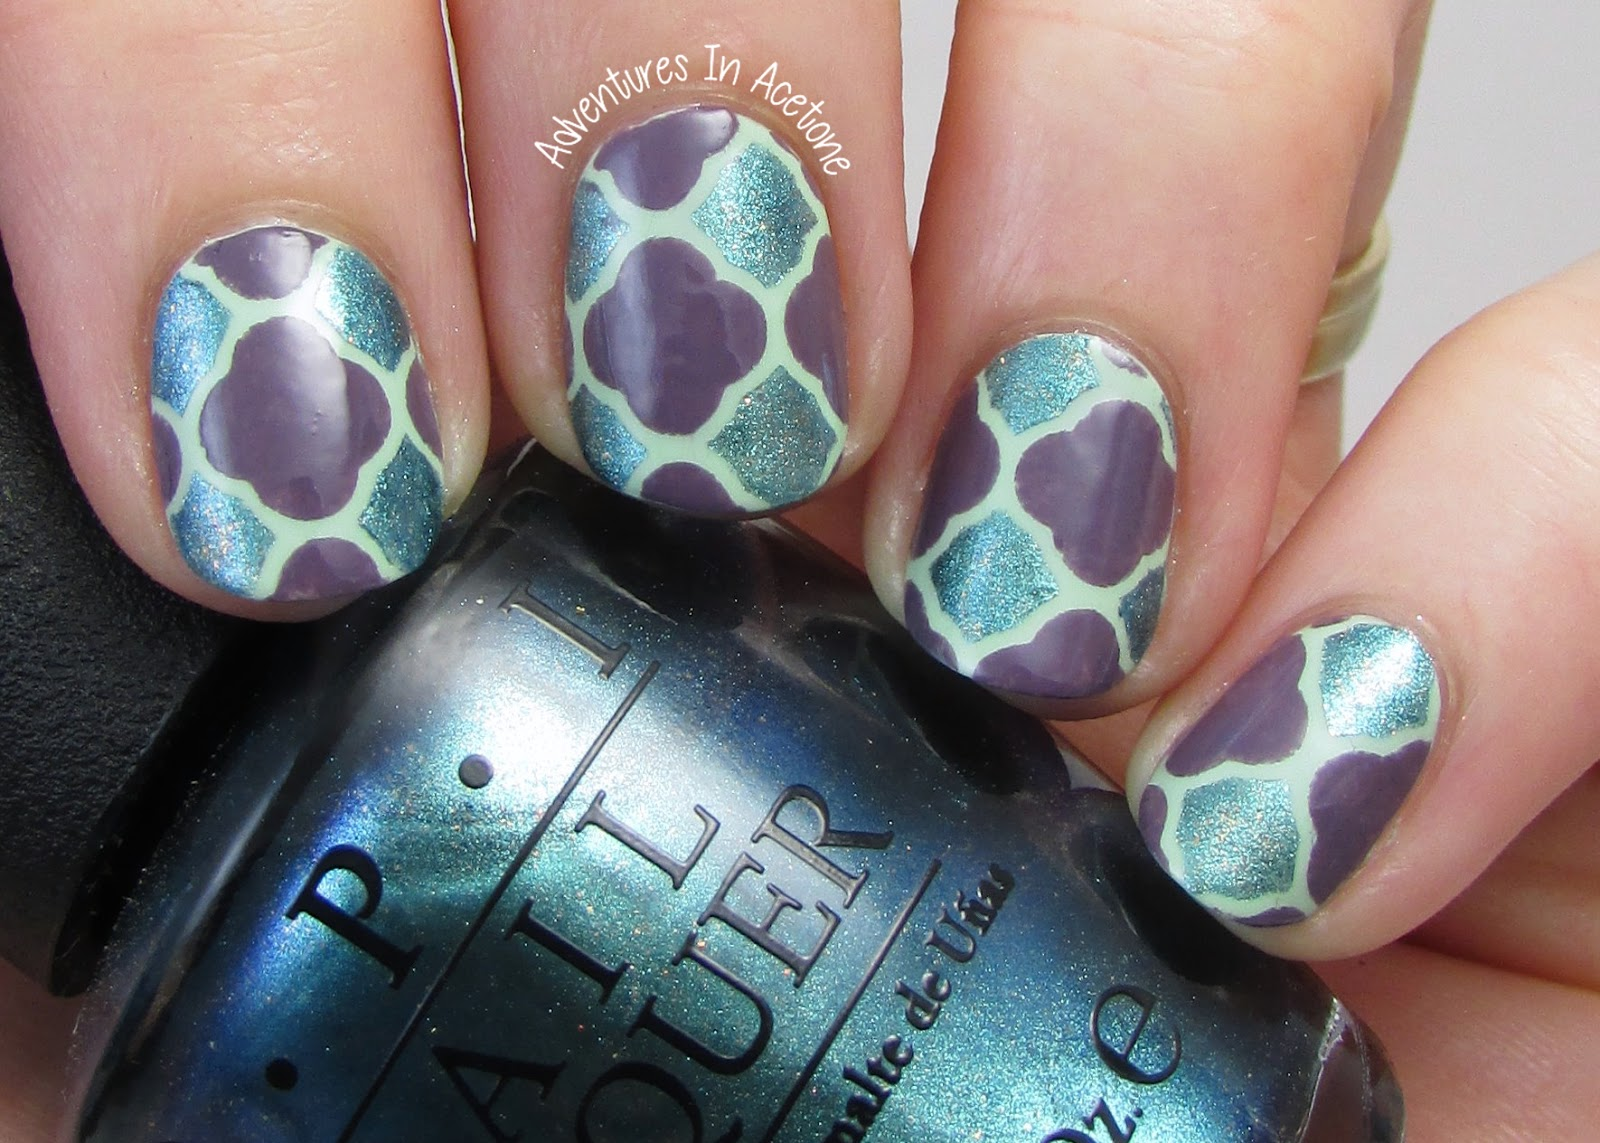 Quatrefoil Nail Art With OPI Hawaii! - Adventures In Acetone